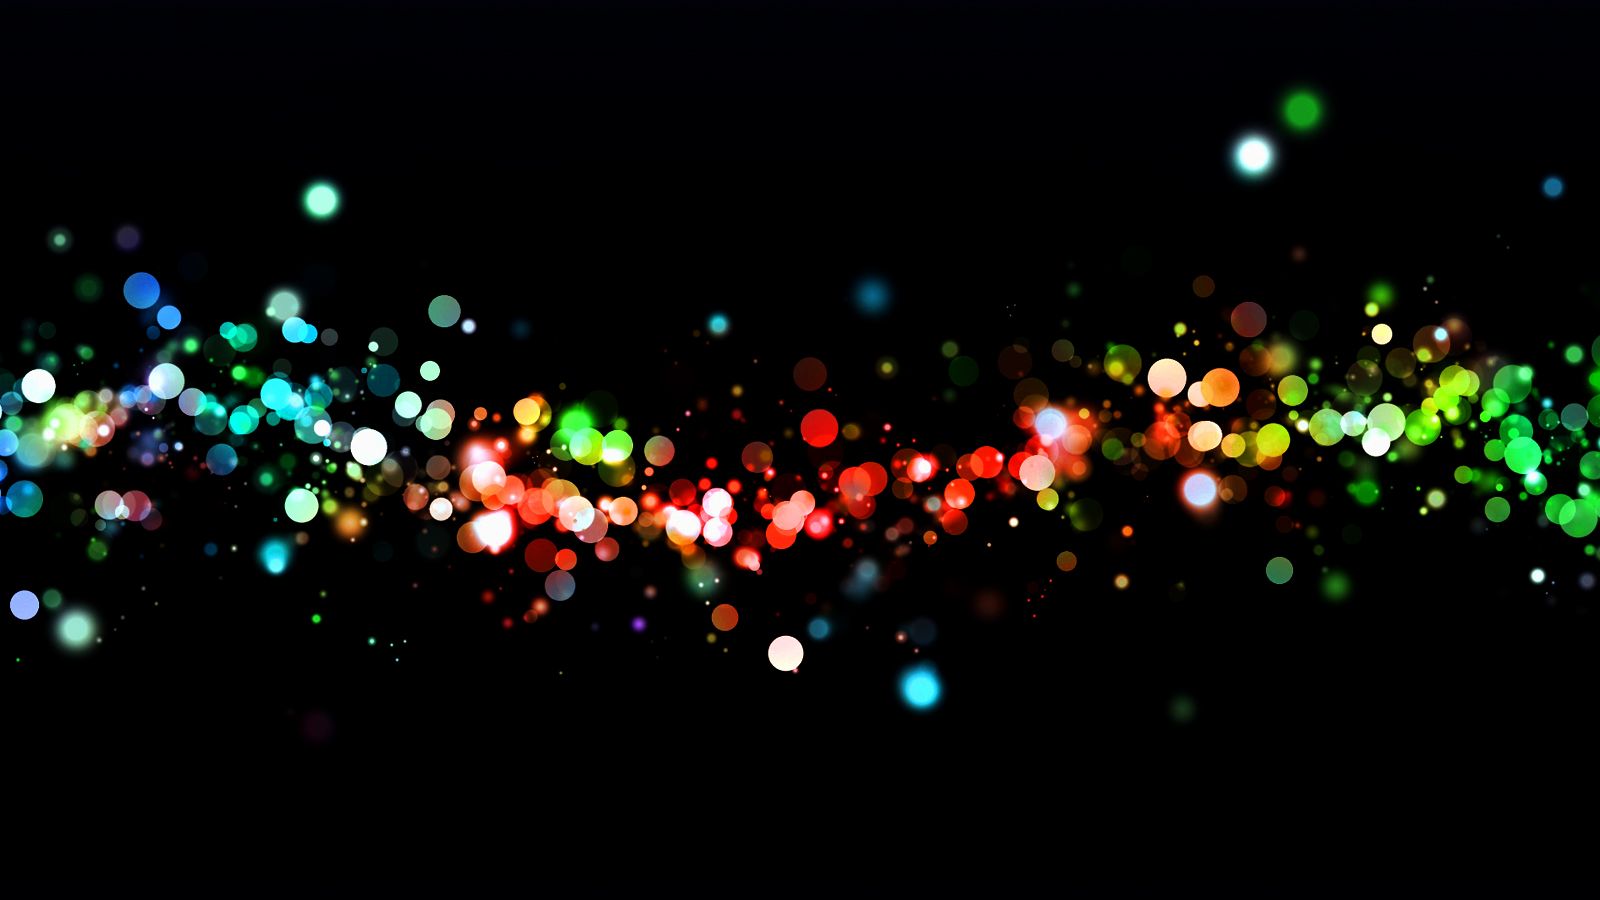 Abstract Light Circles Bokeh HD Wallpapers Download Wallpapers in 1600x900